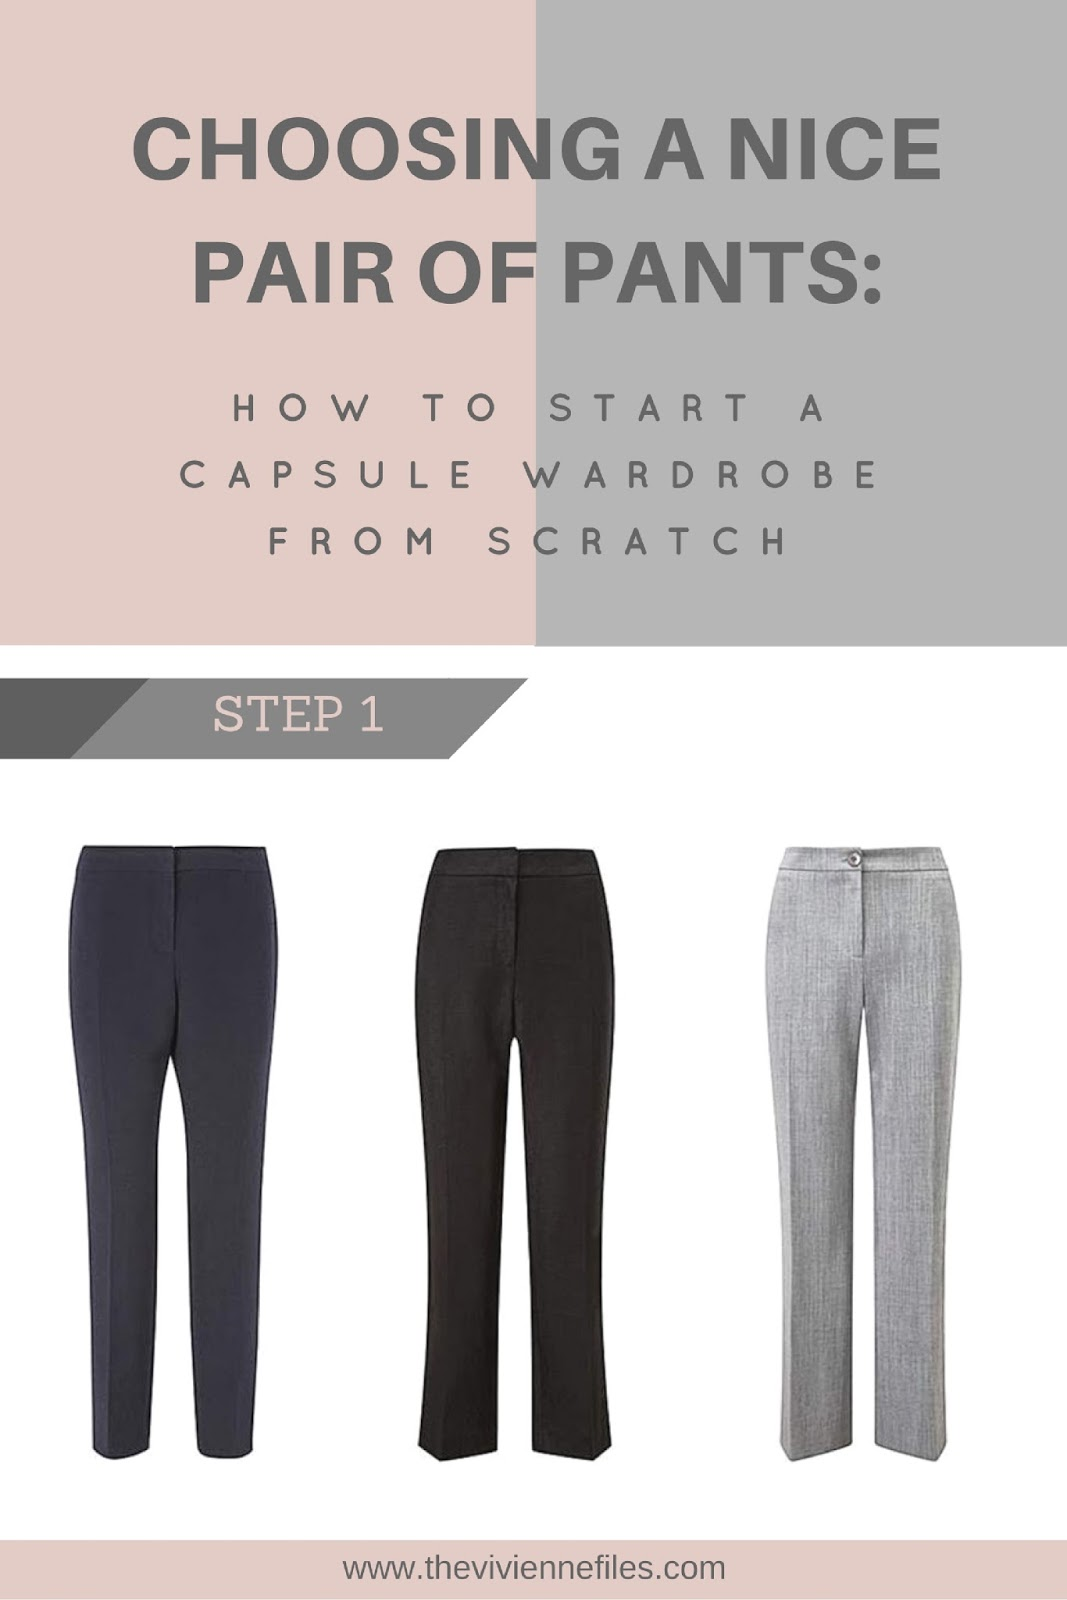 How To Build A Capsule Wardrobe From Scratch Step One: A